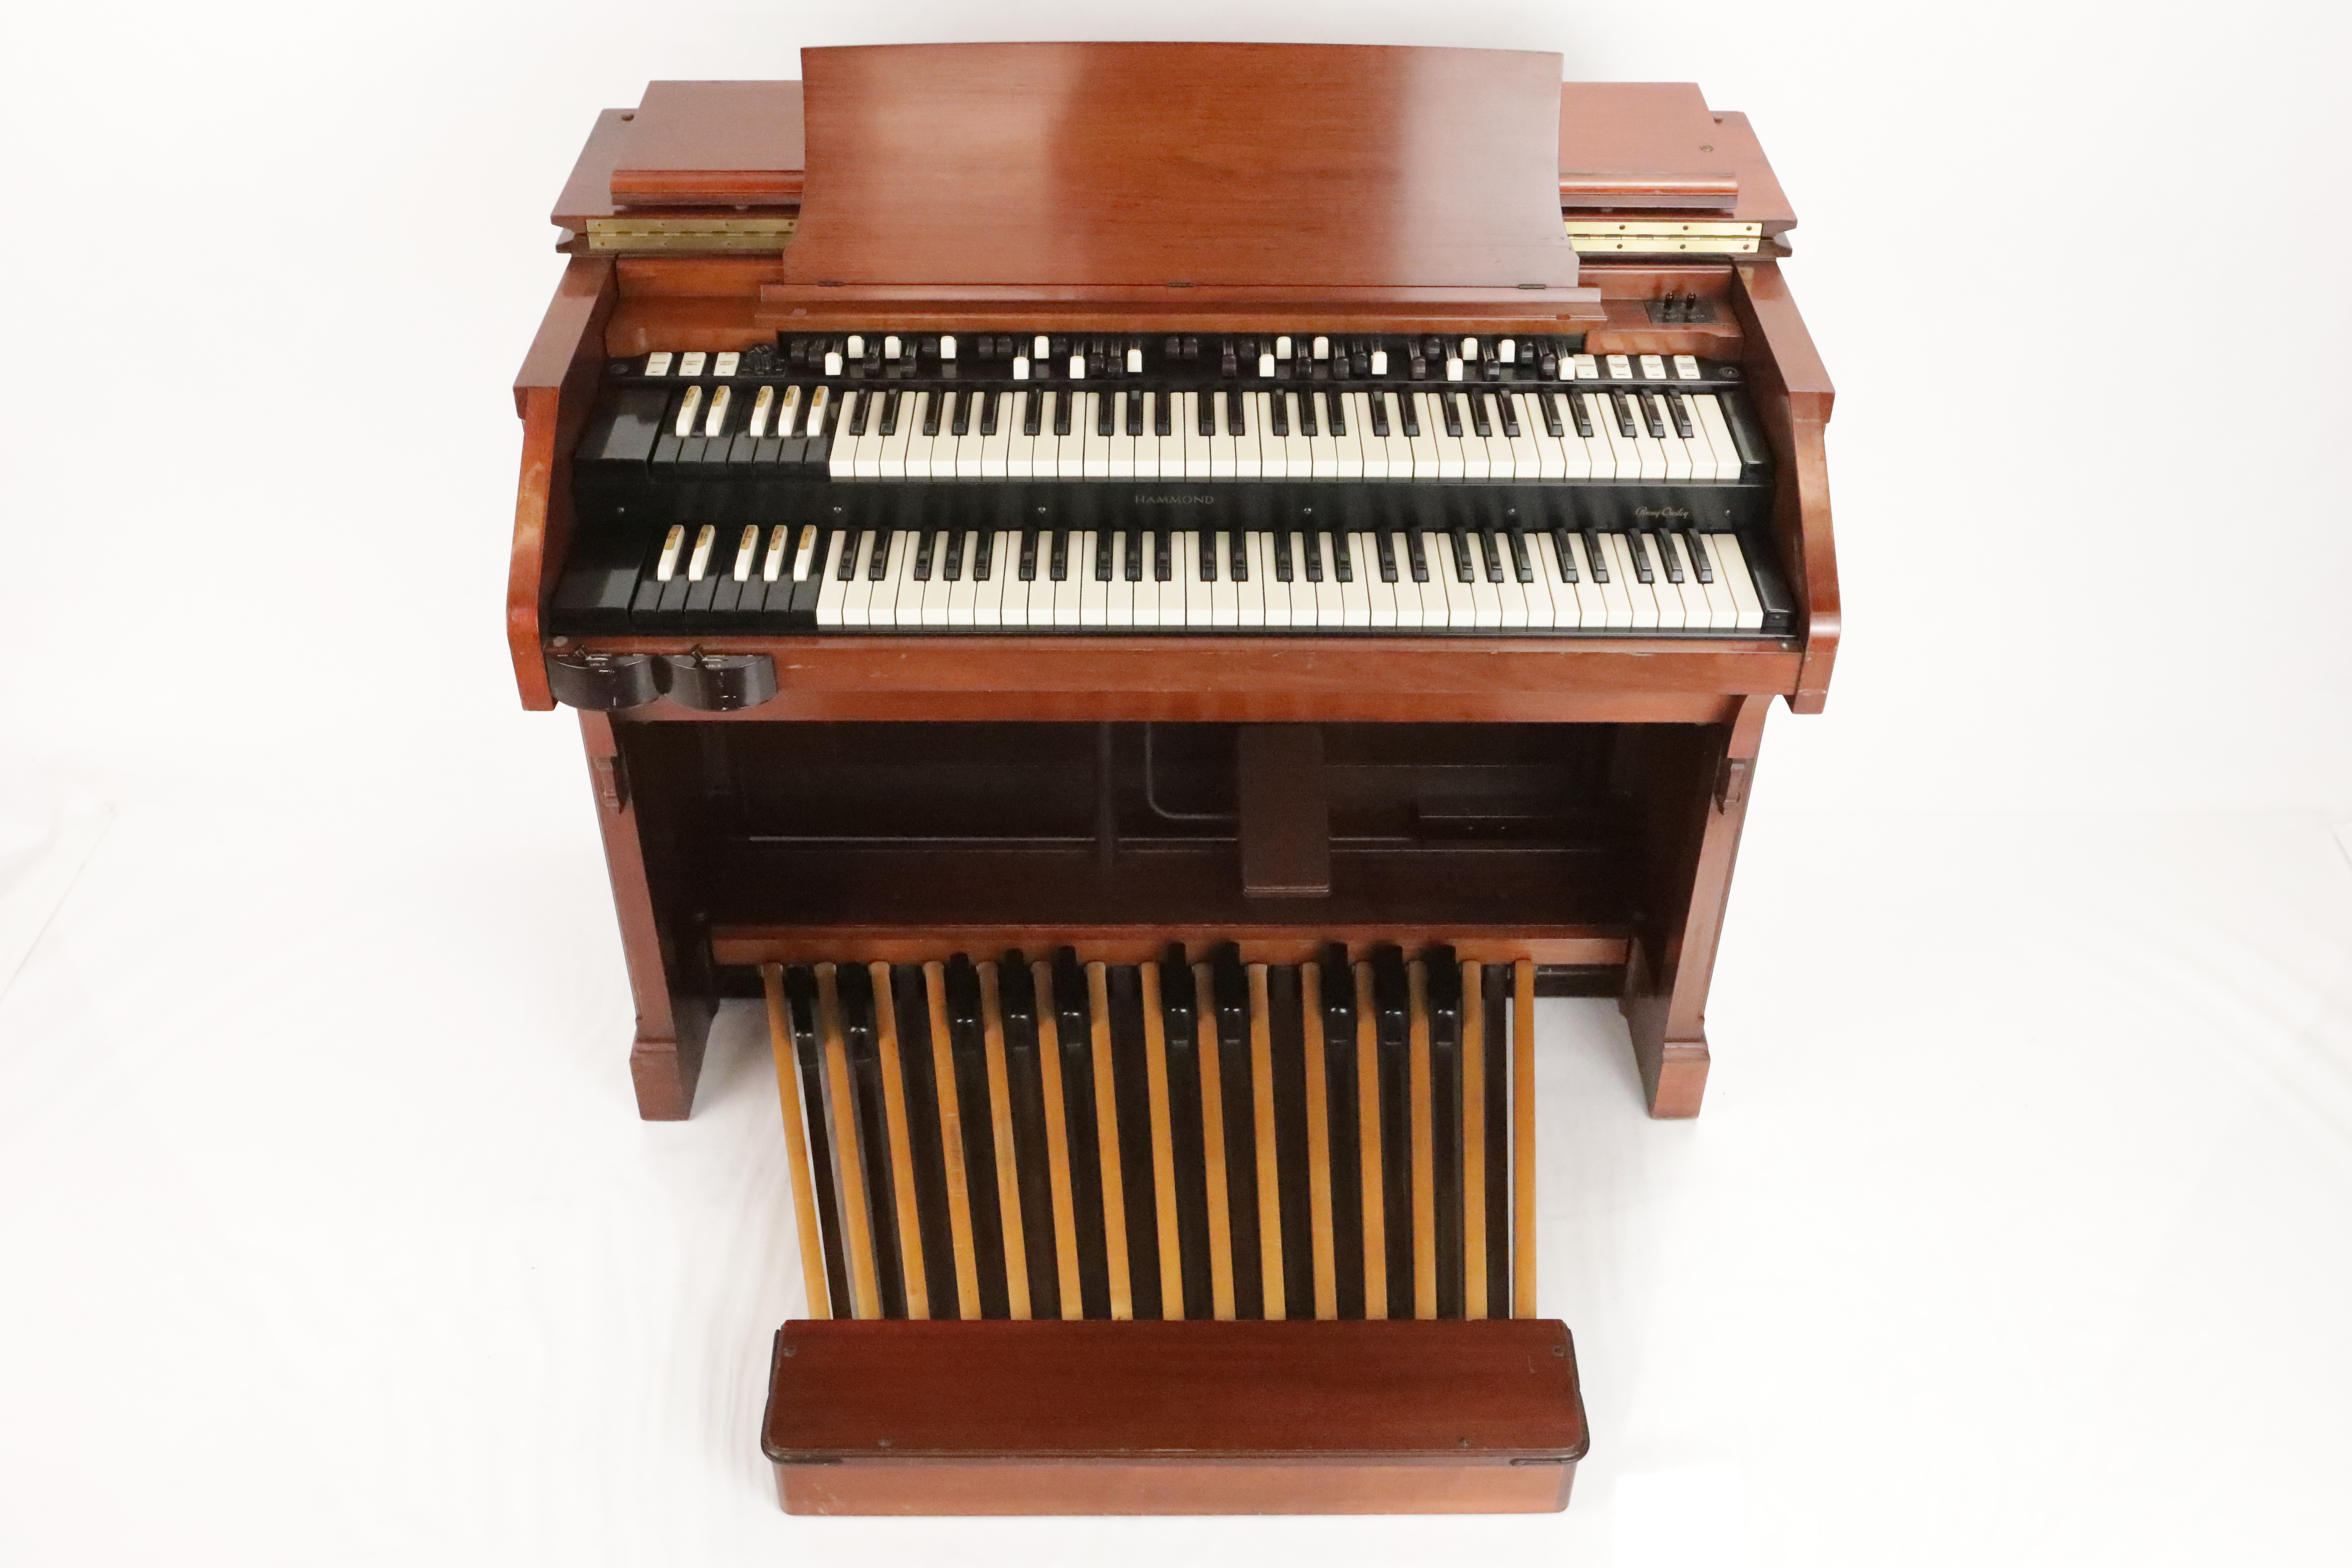 1962 Hammond C-3 Tonewheel Organ w/ Leslie Tone & Speed Controls C3 #34566